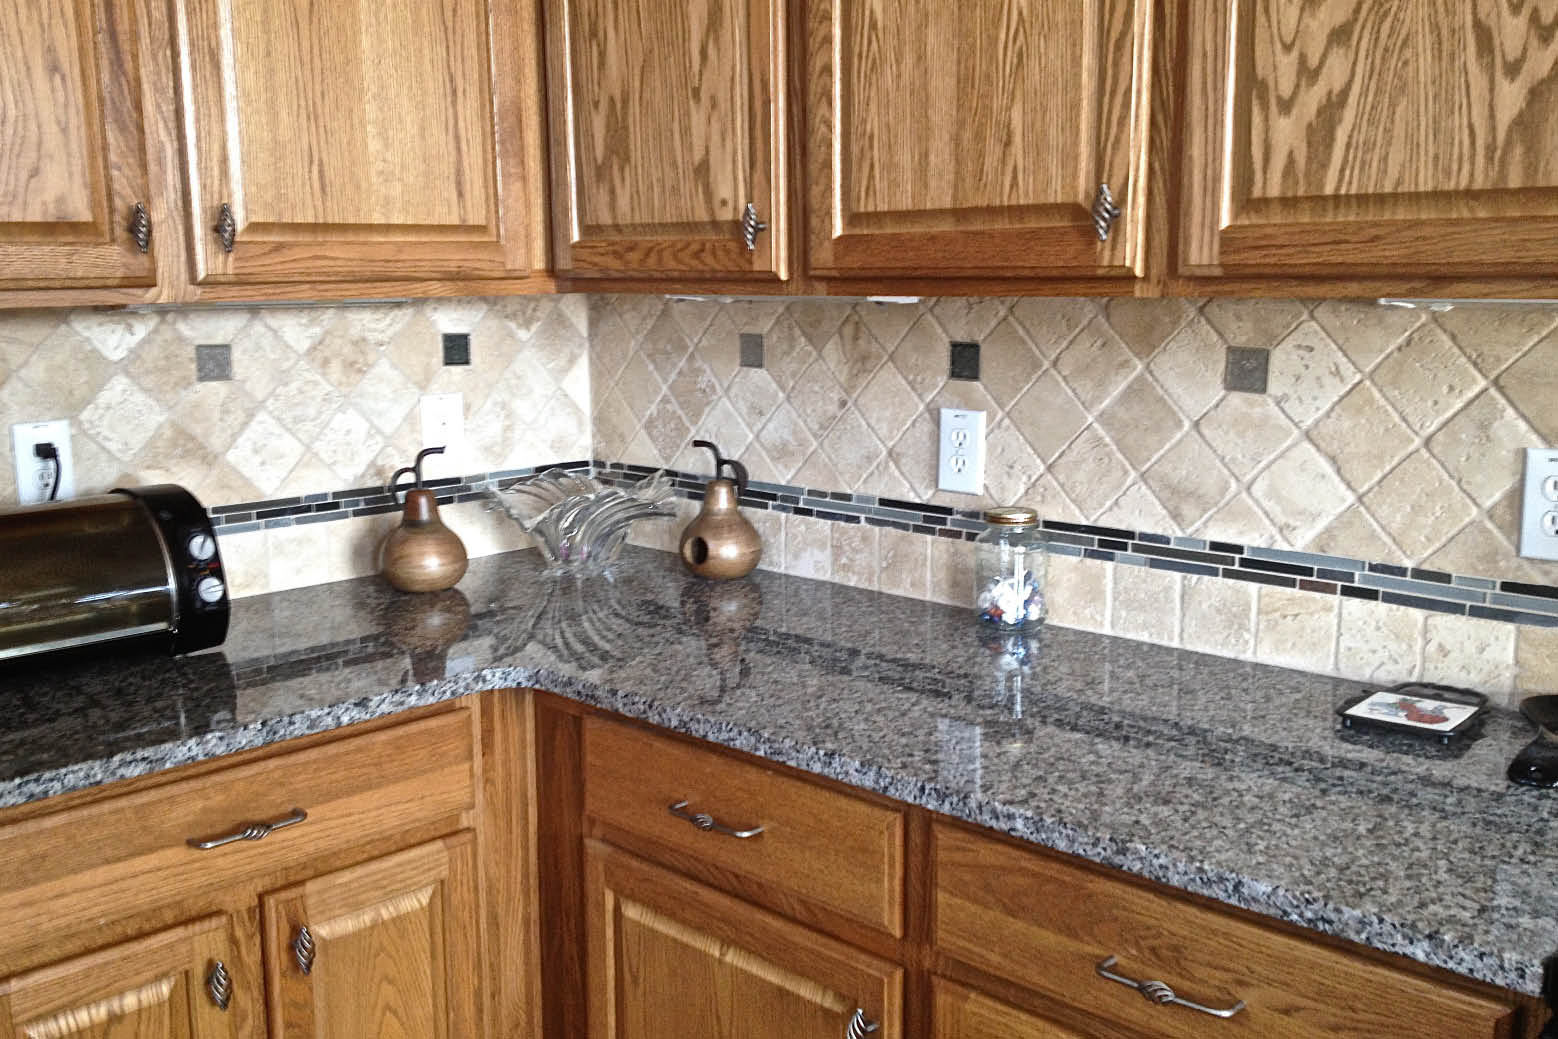 Granite countertops bathroom remodel kitchen remodel Bathroom remodel durham nc